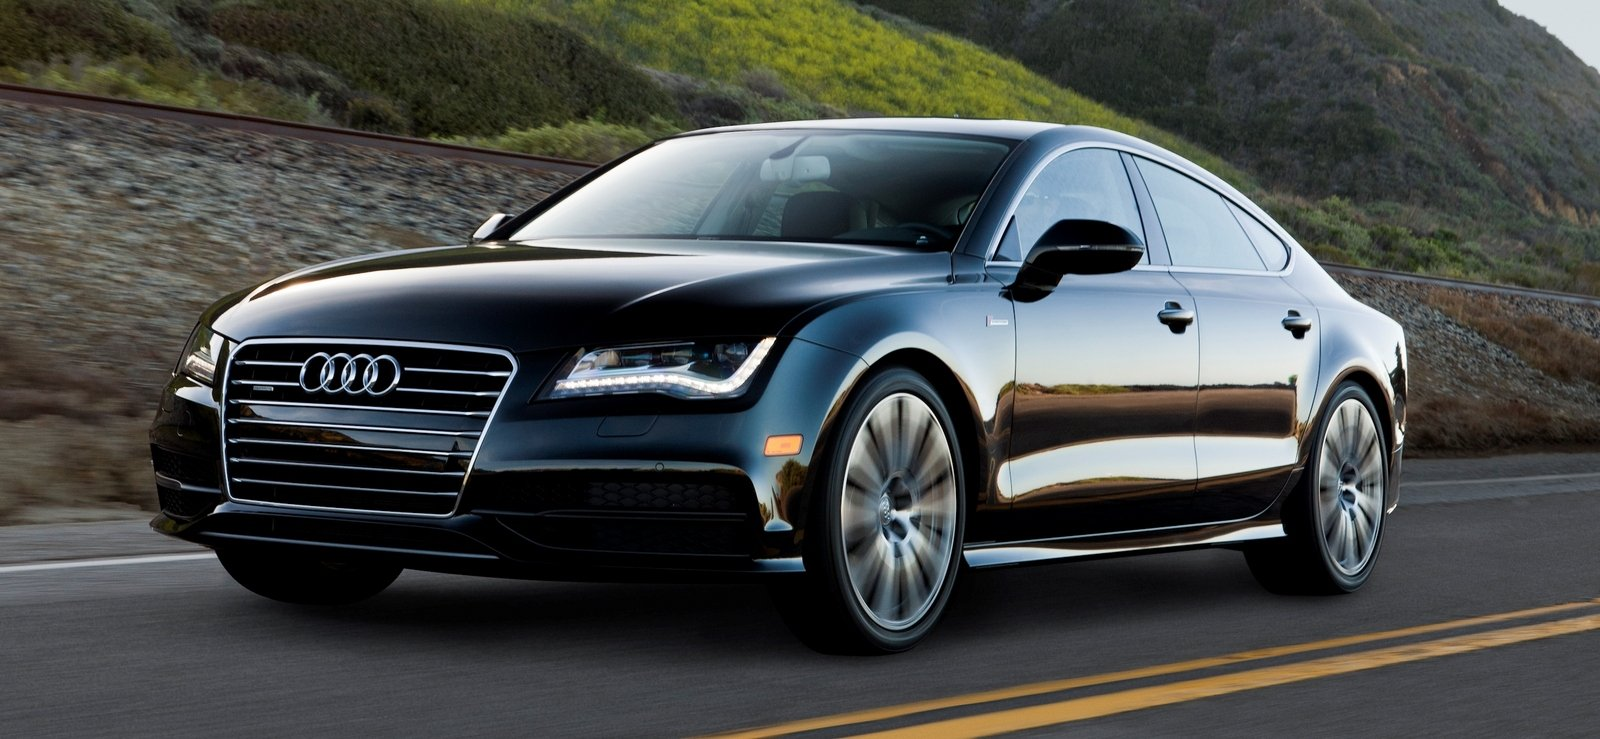 2014 audi a7 picture 512941 car review top speed. Black Bedroom Furniture Sets. Home Design Ideas